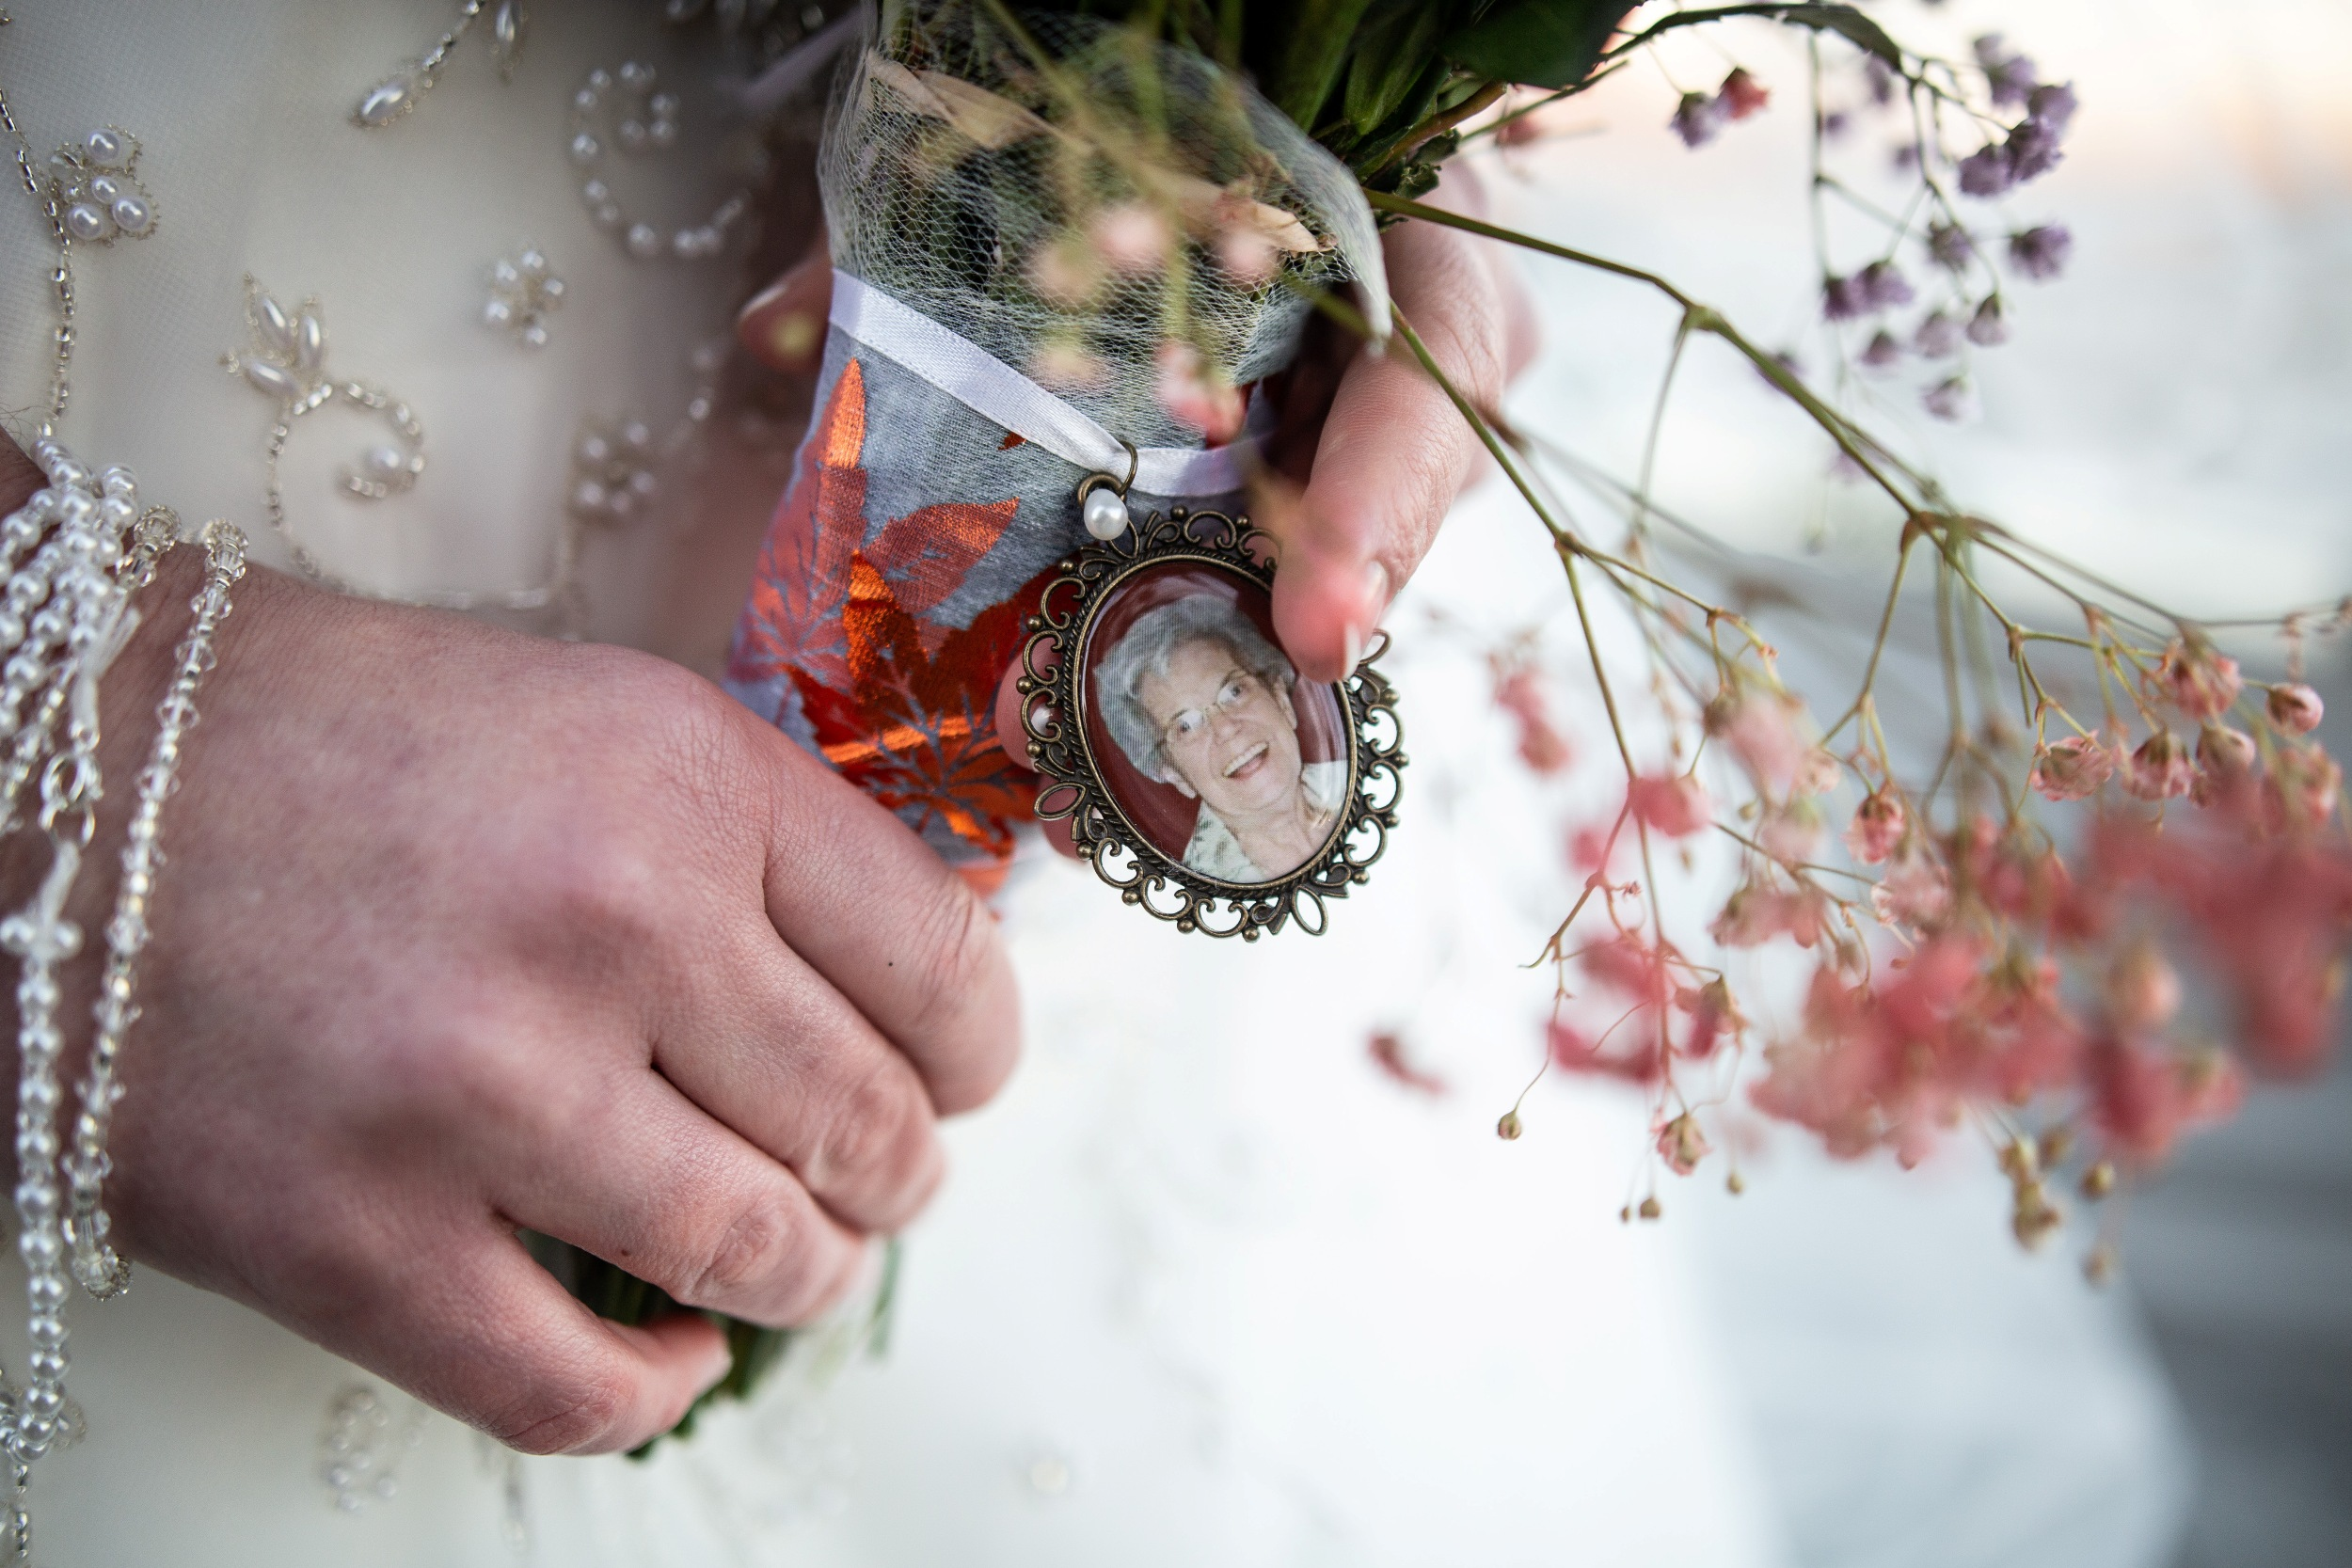 grandmother's charm on bride's flowers